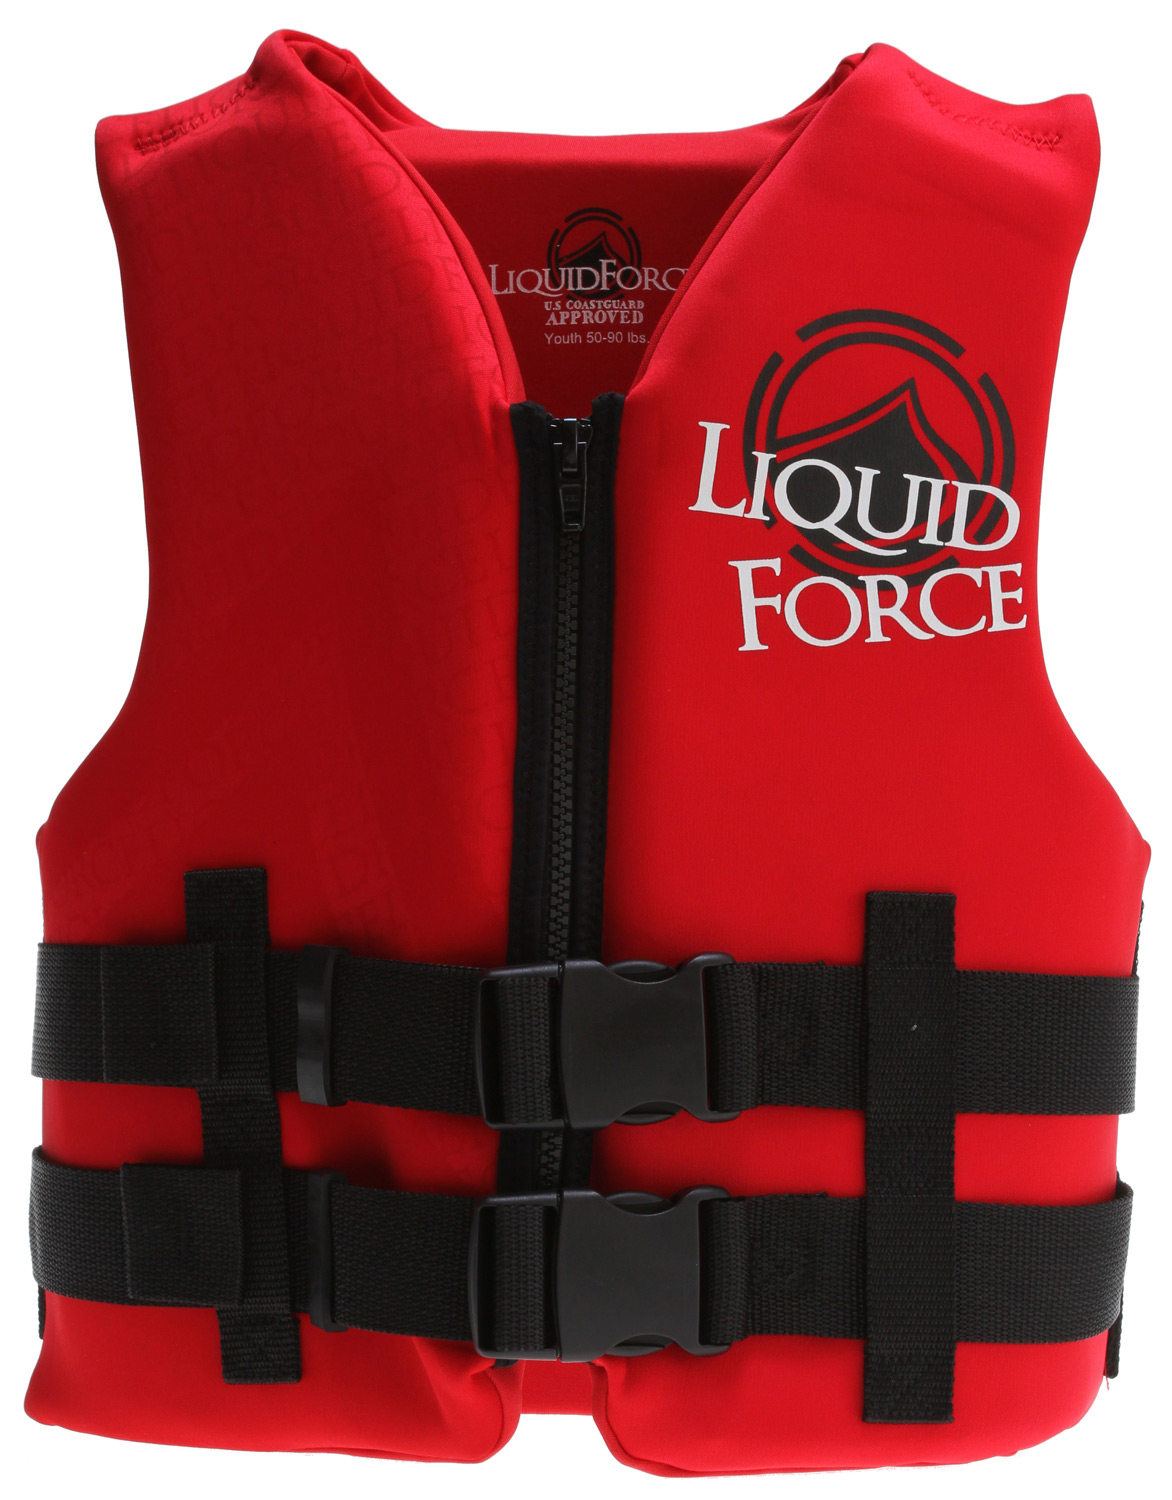 Wake Safety first... that's our motto... especially when it comes to your prized possession. With that in mind, we designed comfortable vests that your little ones will actually wear. These cozy designs keep your grom looking and feeling good... giving them the confidence to become the future of our sport.Key Features of the Liquid Force Nemesis Classic CGA Wakeboard Vest: US Coast Guard Approved: Maximum flotation and safety Oversized Arm Holes: Extra space and comfort for added mobility Heavy Duty Zipper: Secure solid hold Leg Straps (available on child and infant sized Vest: Safe and secure fit that won't ride up Safety Grab Handles (available on child and infant sized Vest: Something safe to grab onto if they fall in Re-Designed Zipper on Infant Vest: Same CGA safety with a more comfortable fit around the neck - $39.99